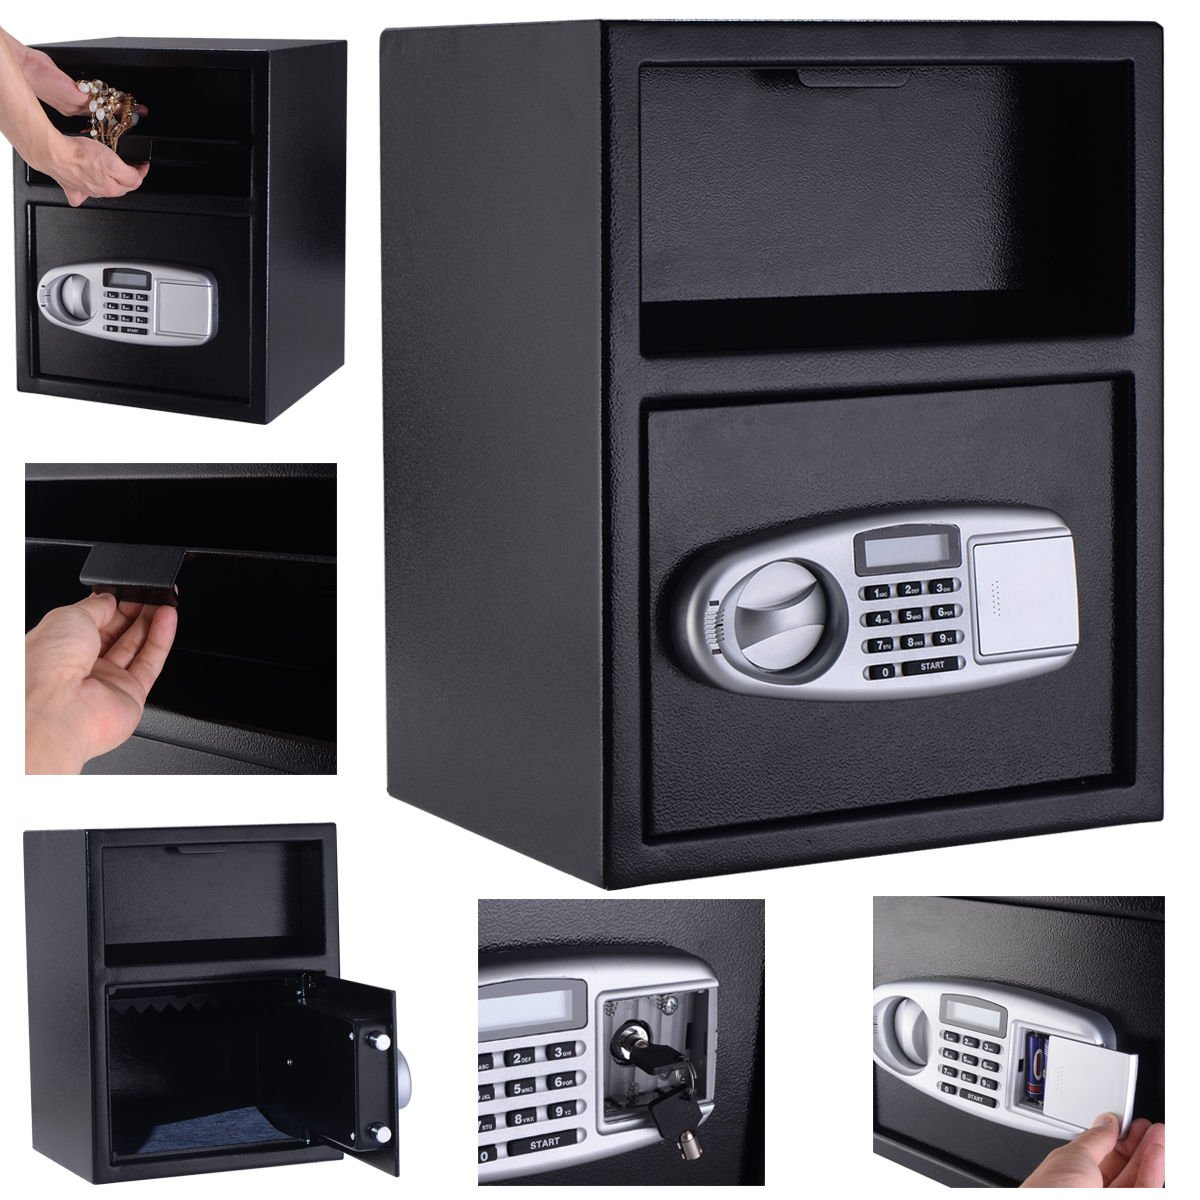 COLIBROX--Digital Safe Box Depository Drop Deposit Front Load Cash Vault Lock Home Jewelry,best gun safe,best gun safe 2017,compact gun safe,cheap gun safe,replacement lock for gun cabinet by COLIBROX (Image #6)